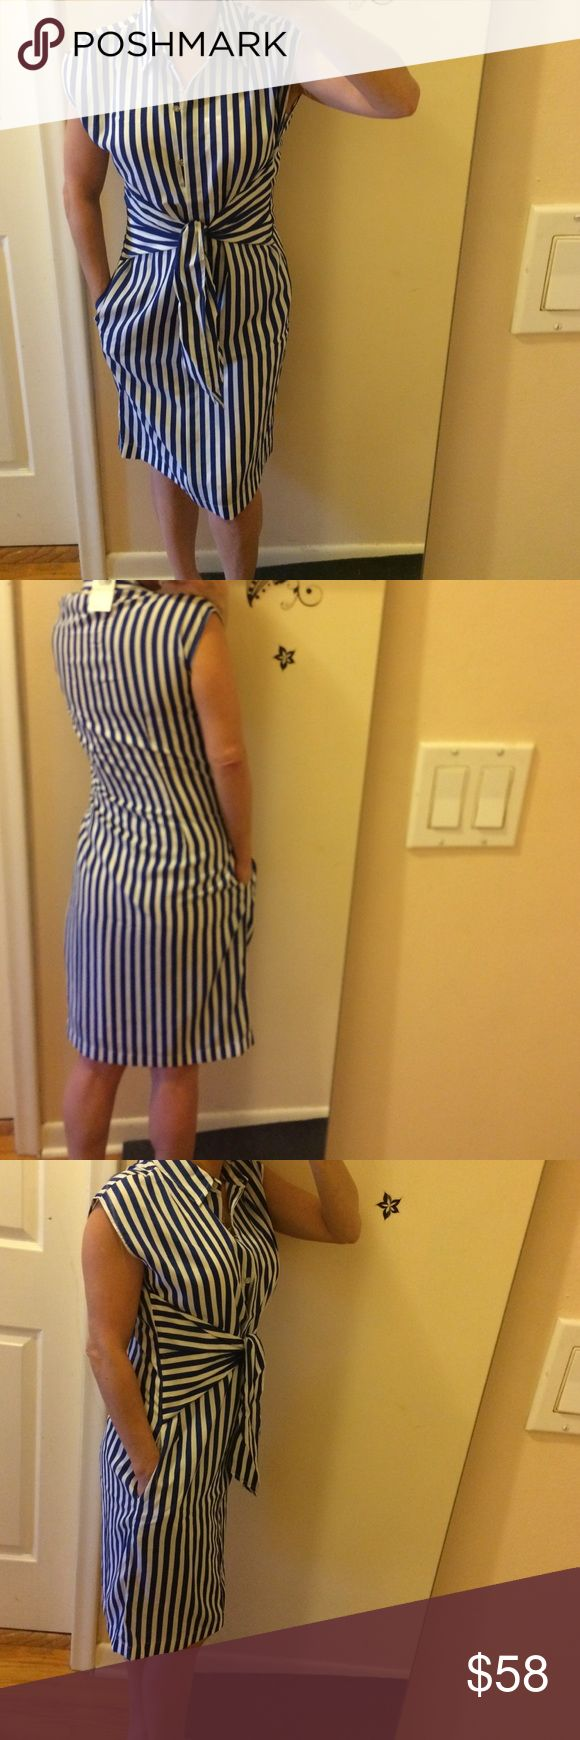 """BNWT nautica striped dress w/pockets. Sleeveless dress that ties at waist. Has pockets. Sleeveless Abd has extra button attached to tags. Bust: 17"""" arm holes: 7.5"""". Shoulders: 6.5"""".  Top of shoulder to bottom: 36"""" long. Made of polyester but a real smooth feel and look. A very crisp look for first impressions , or maybe you have a special event that you can really dress up with the right accessories. Retails 148$ plus all my buyers receive a free thank you  gift. Nautica Dresses Midi"""